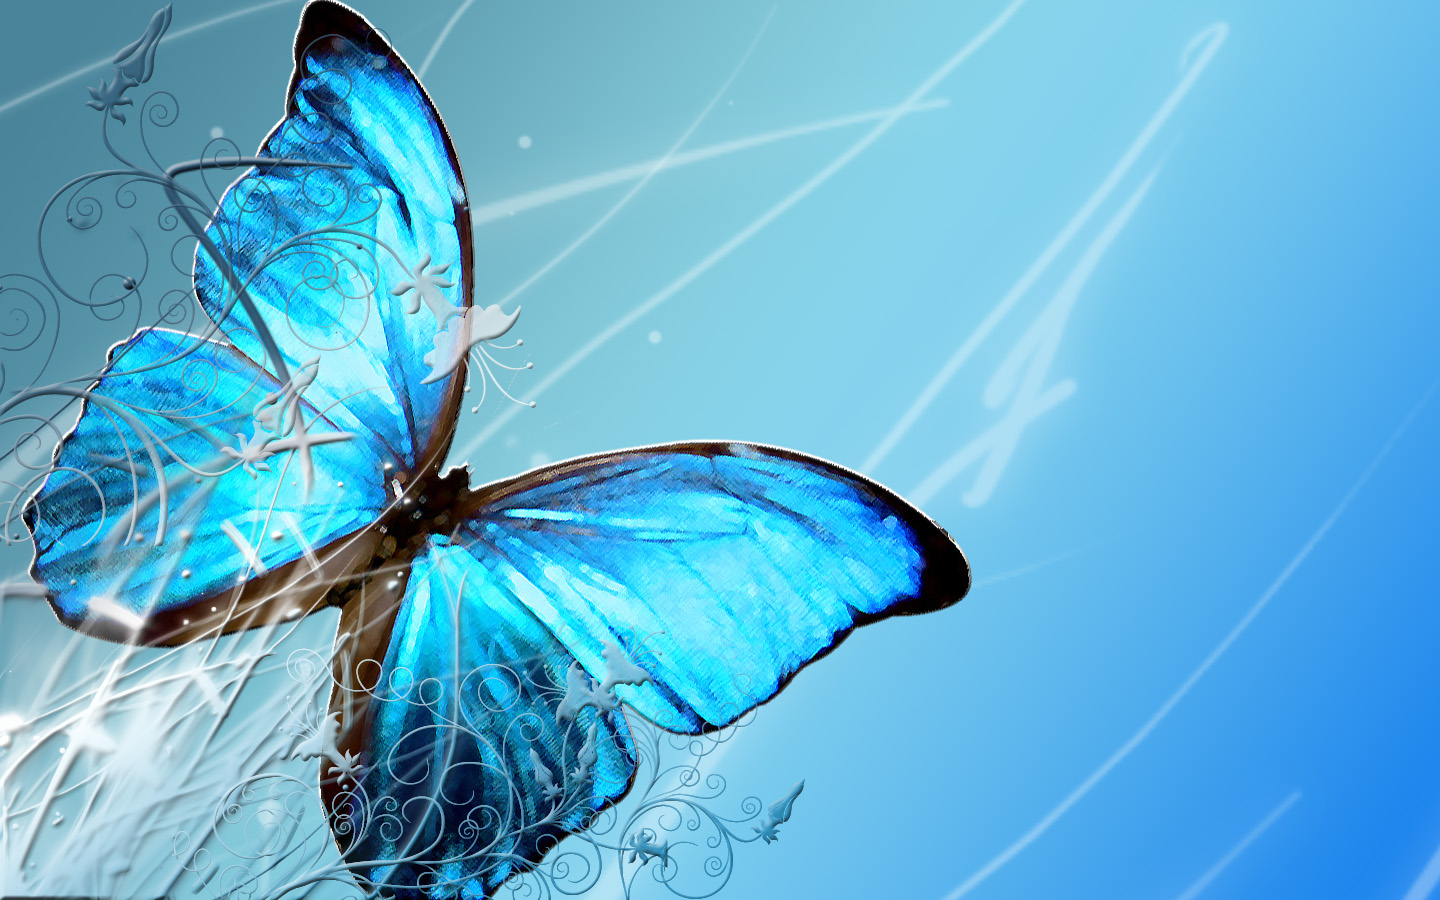 Butterfly Hd Wallpaper Free Download Hd Desktop Wallpapers 4k Hd